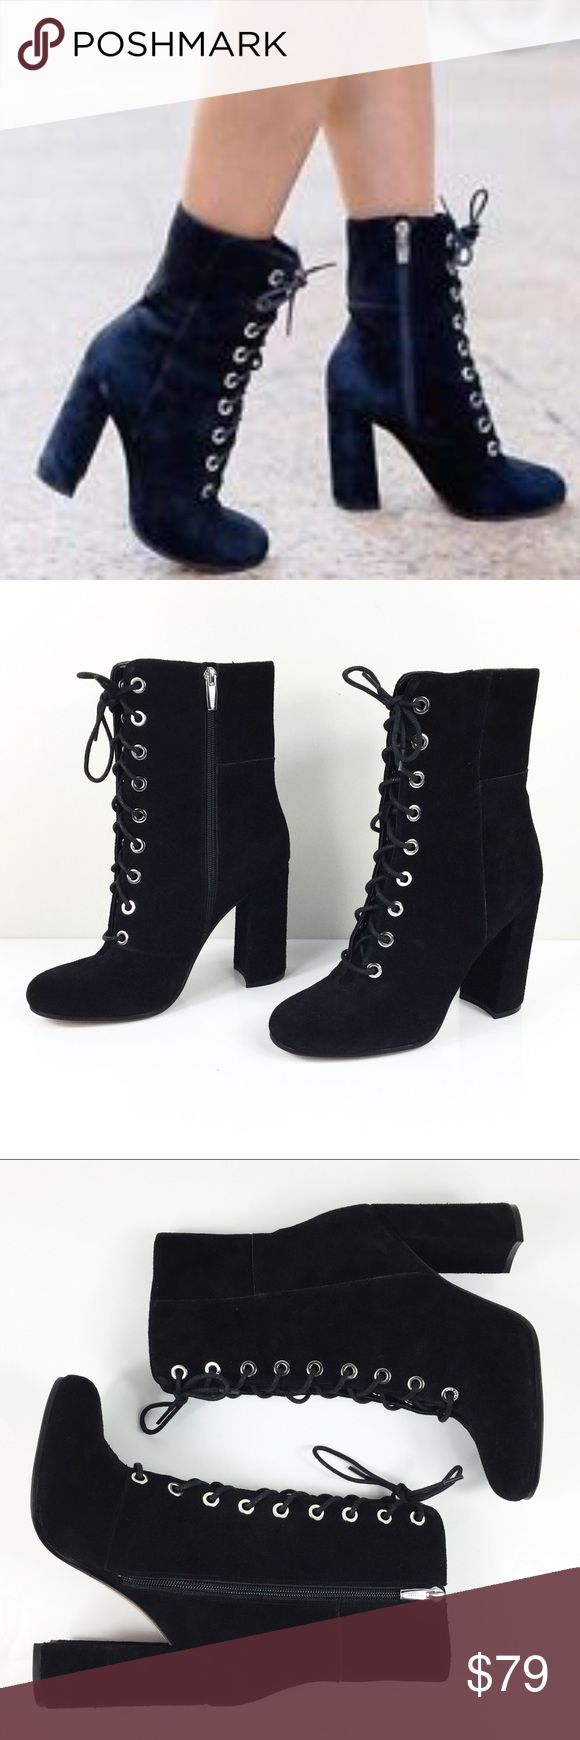 NWOB VINCE CAMUTO TEISHA COMBAT ANKLE BOOTS 10 NWOB VINCE CAMUTO TEISHA COMBAT ANKLE BOOTS in size 10. Brand new without box, absolutely flawless, made with real leather suede, true fashion statement piece! Make an offer! Vince Camuto Shoes Ankle Boots & Booties